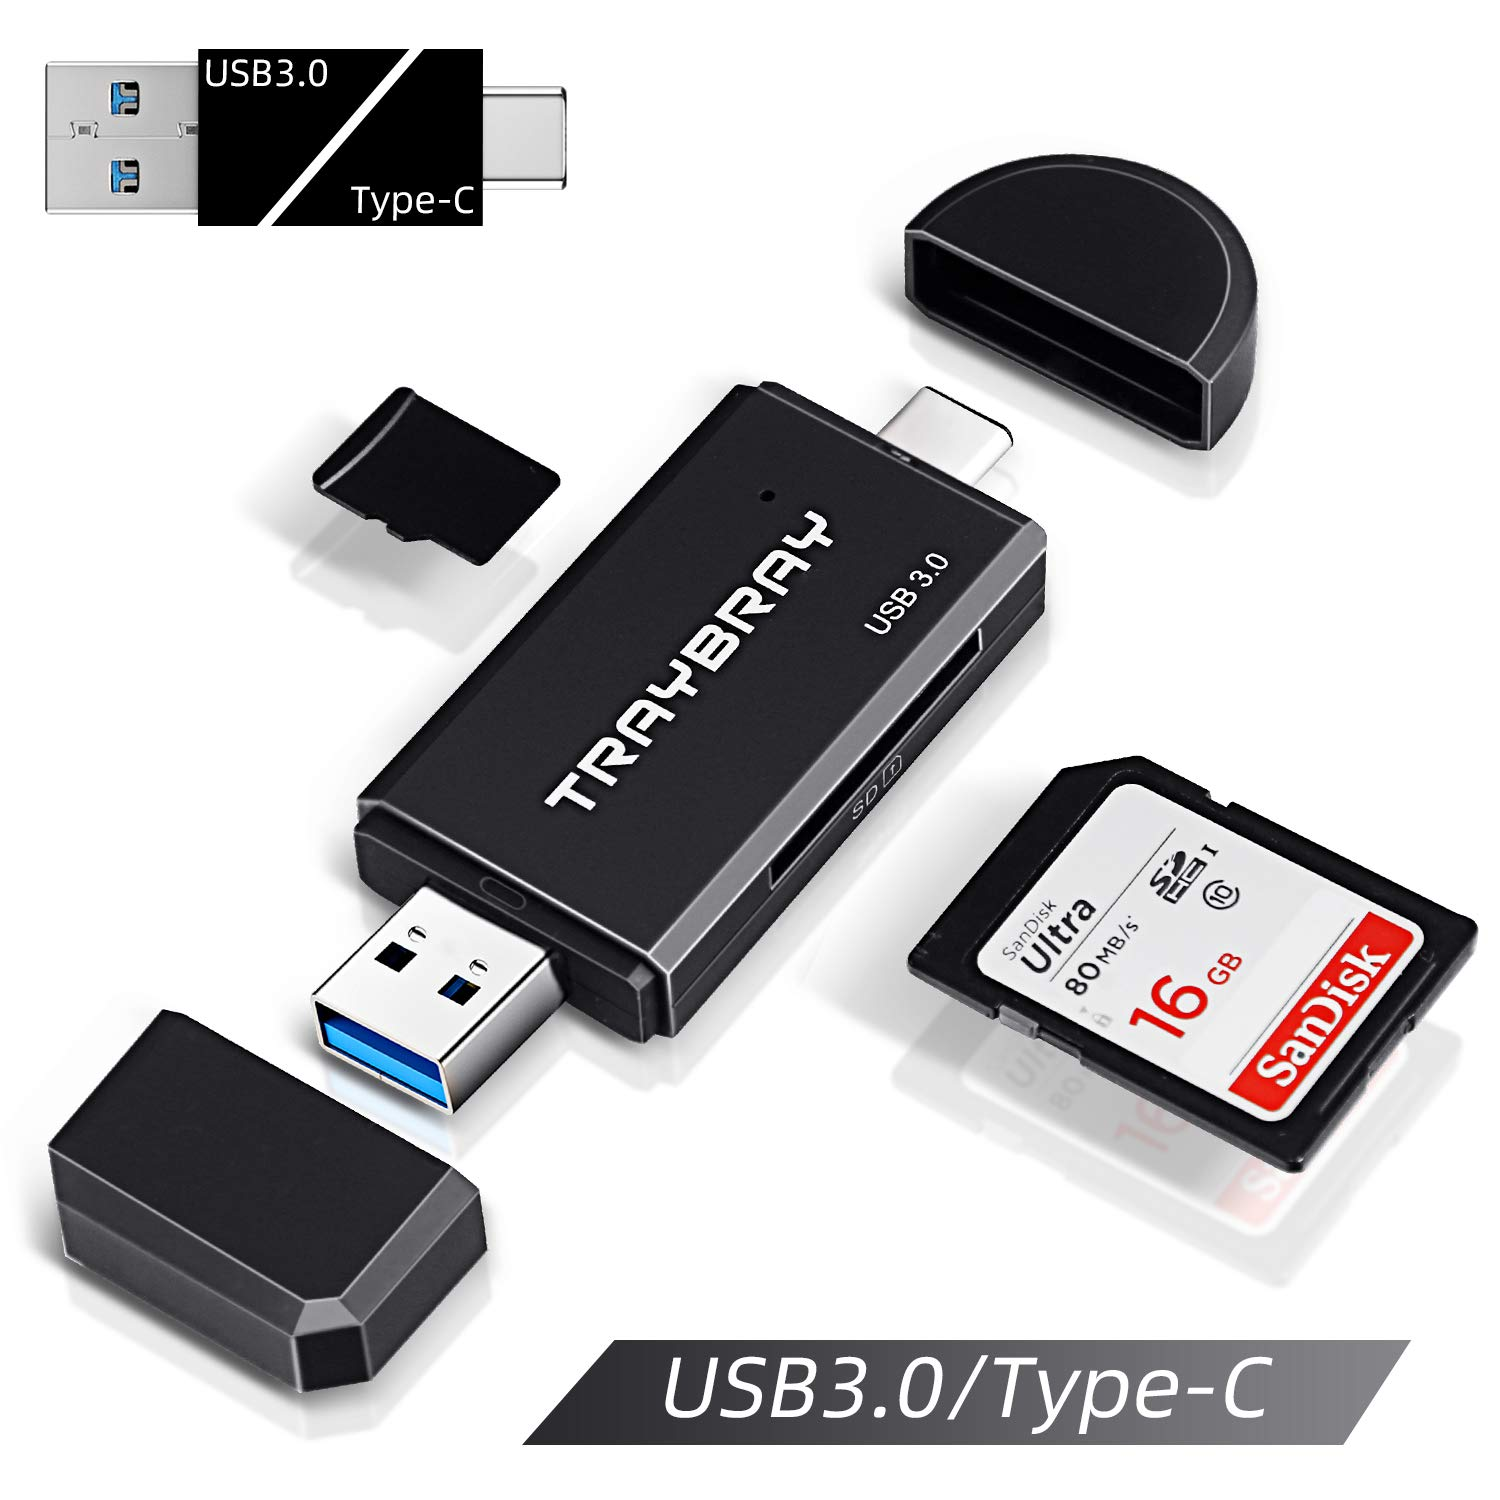 PRO USB 3.0 Card Reader Works for Samsung Galaxy J7 Pro Adapter to Directly Read at 5Gbps Your MicroSDHC MicroSDXC Cards